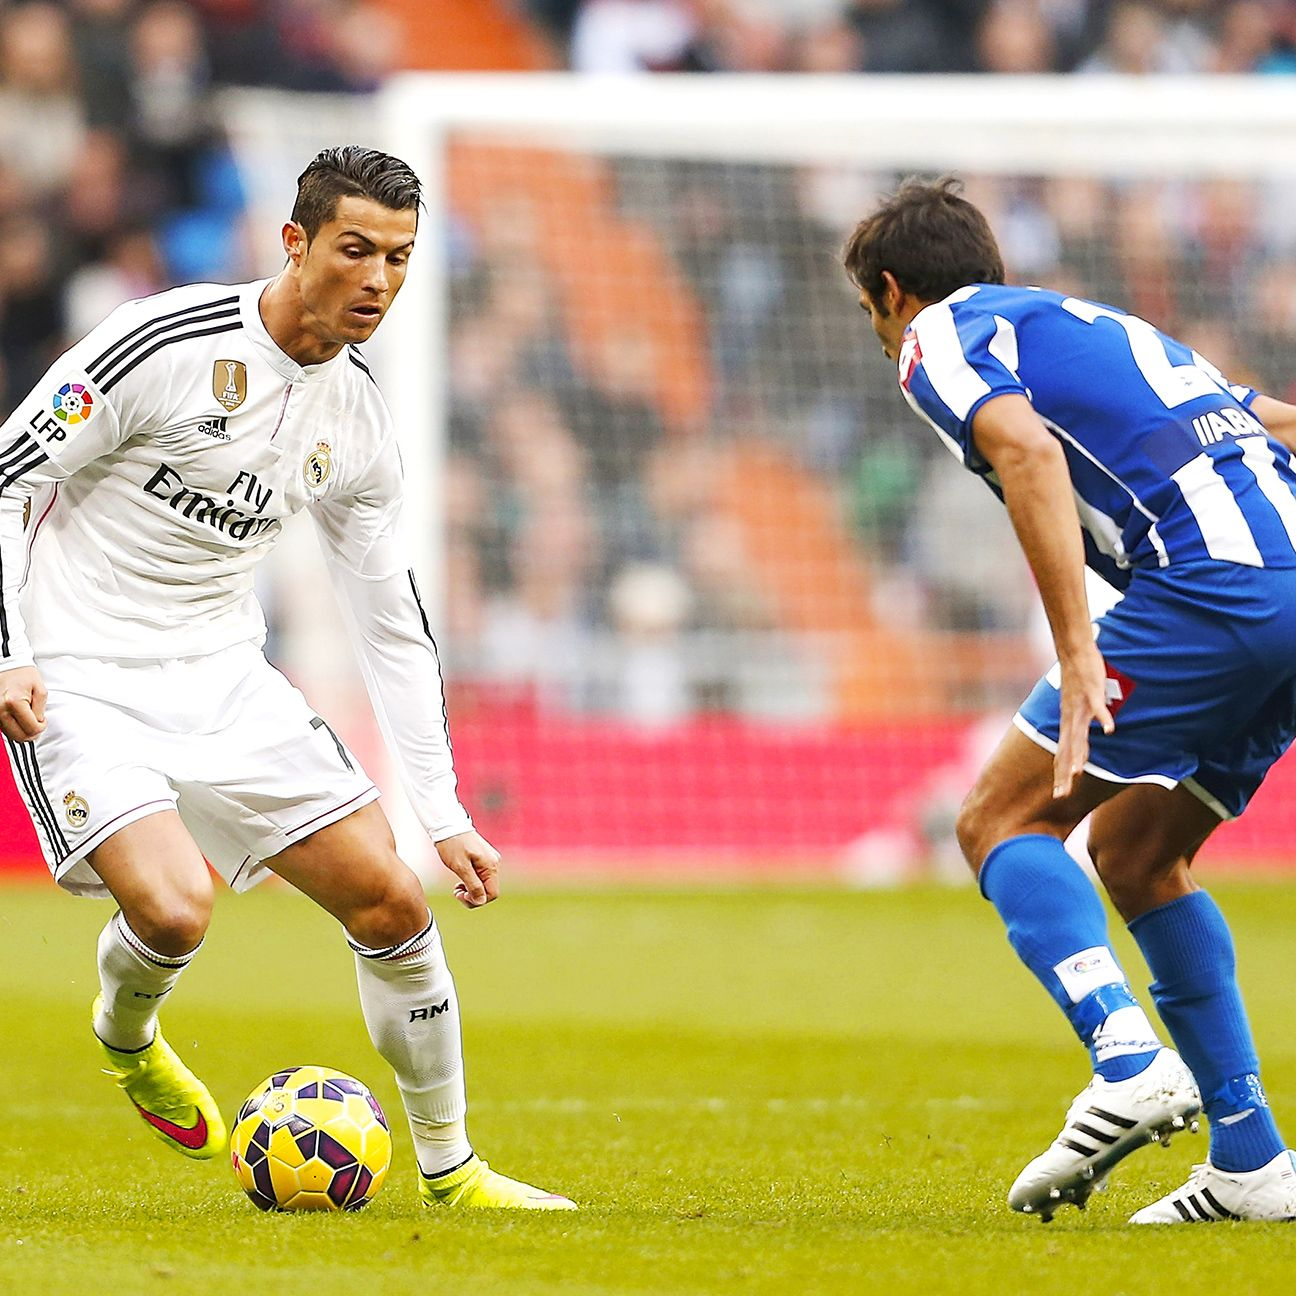 Cristiano Ronaldo's 2015 struggles continued with a goalless effort against Deportivo.